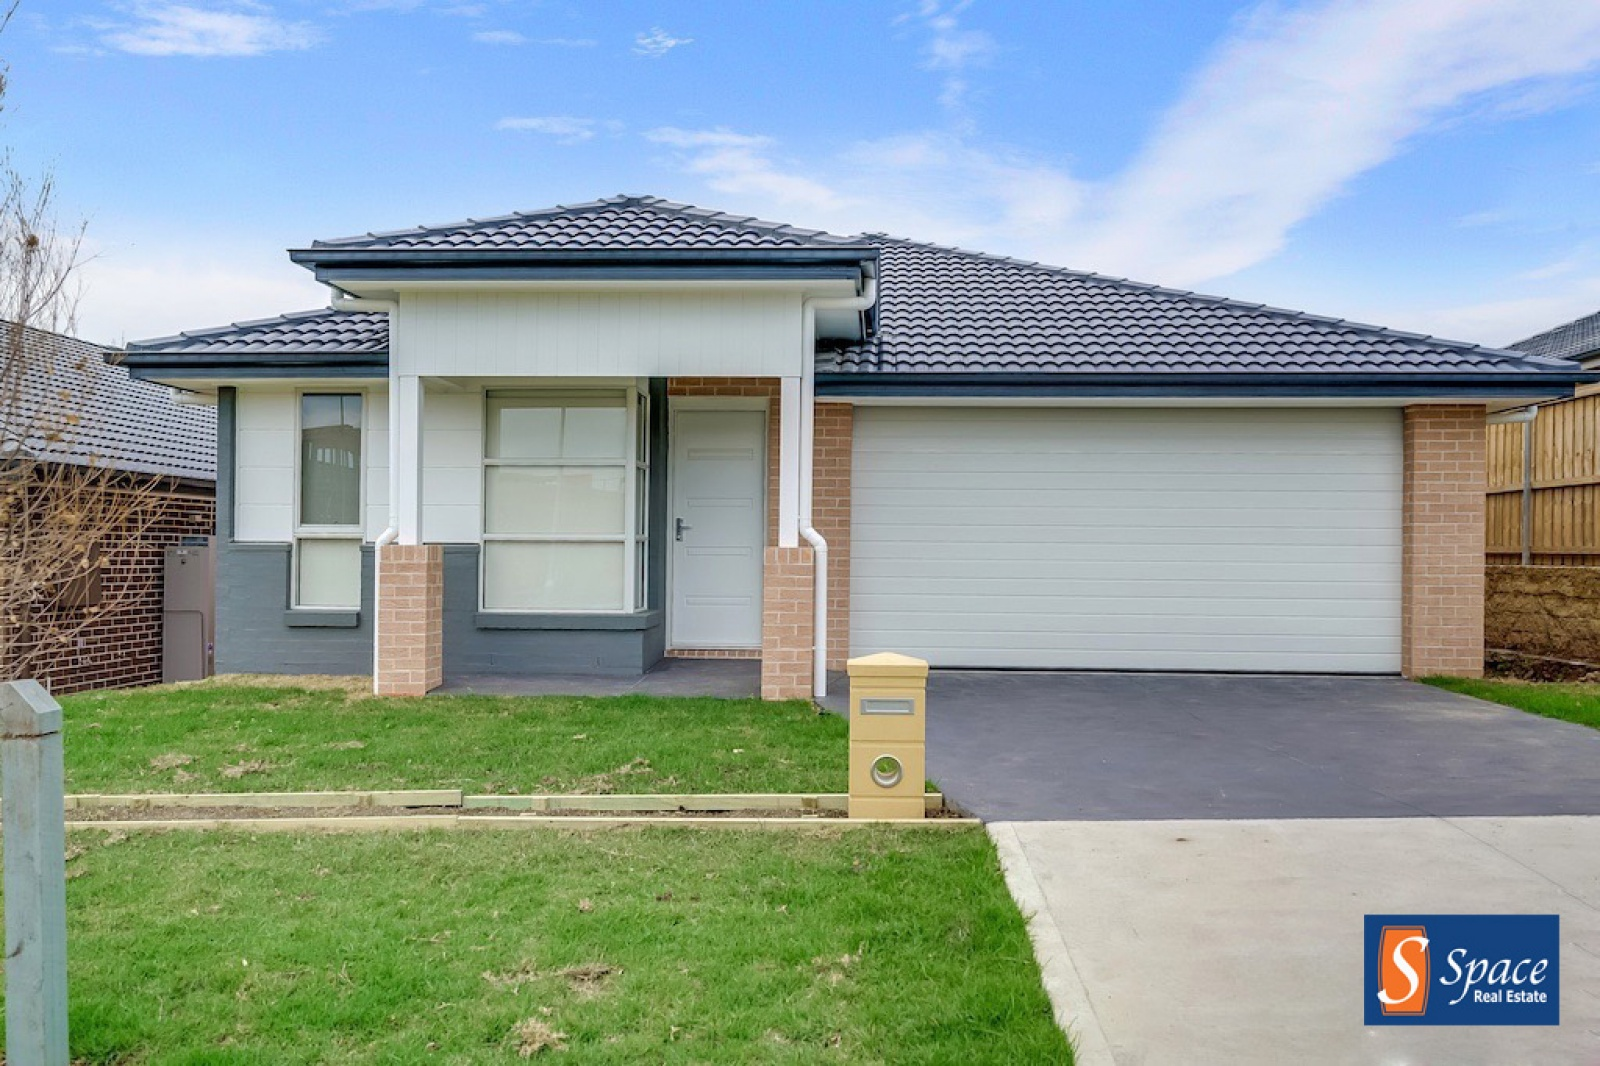 19 Davidson Street,Oran Park,NSW,4 Bedrooms Bedrooms,2 BathroomsBathrooms,House,Davidson Street,1398